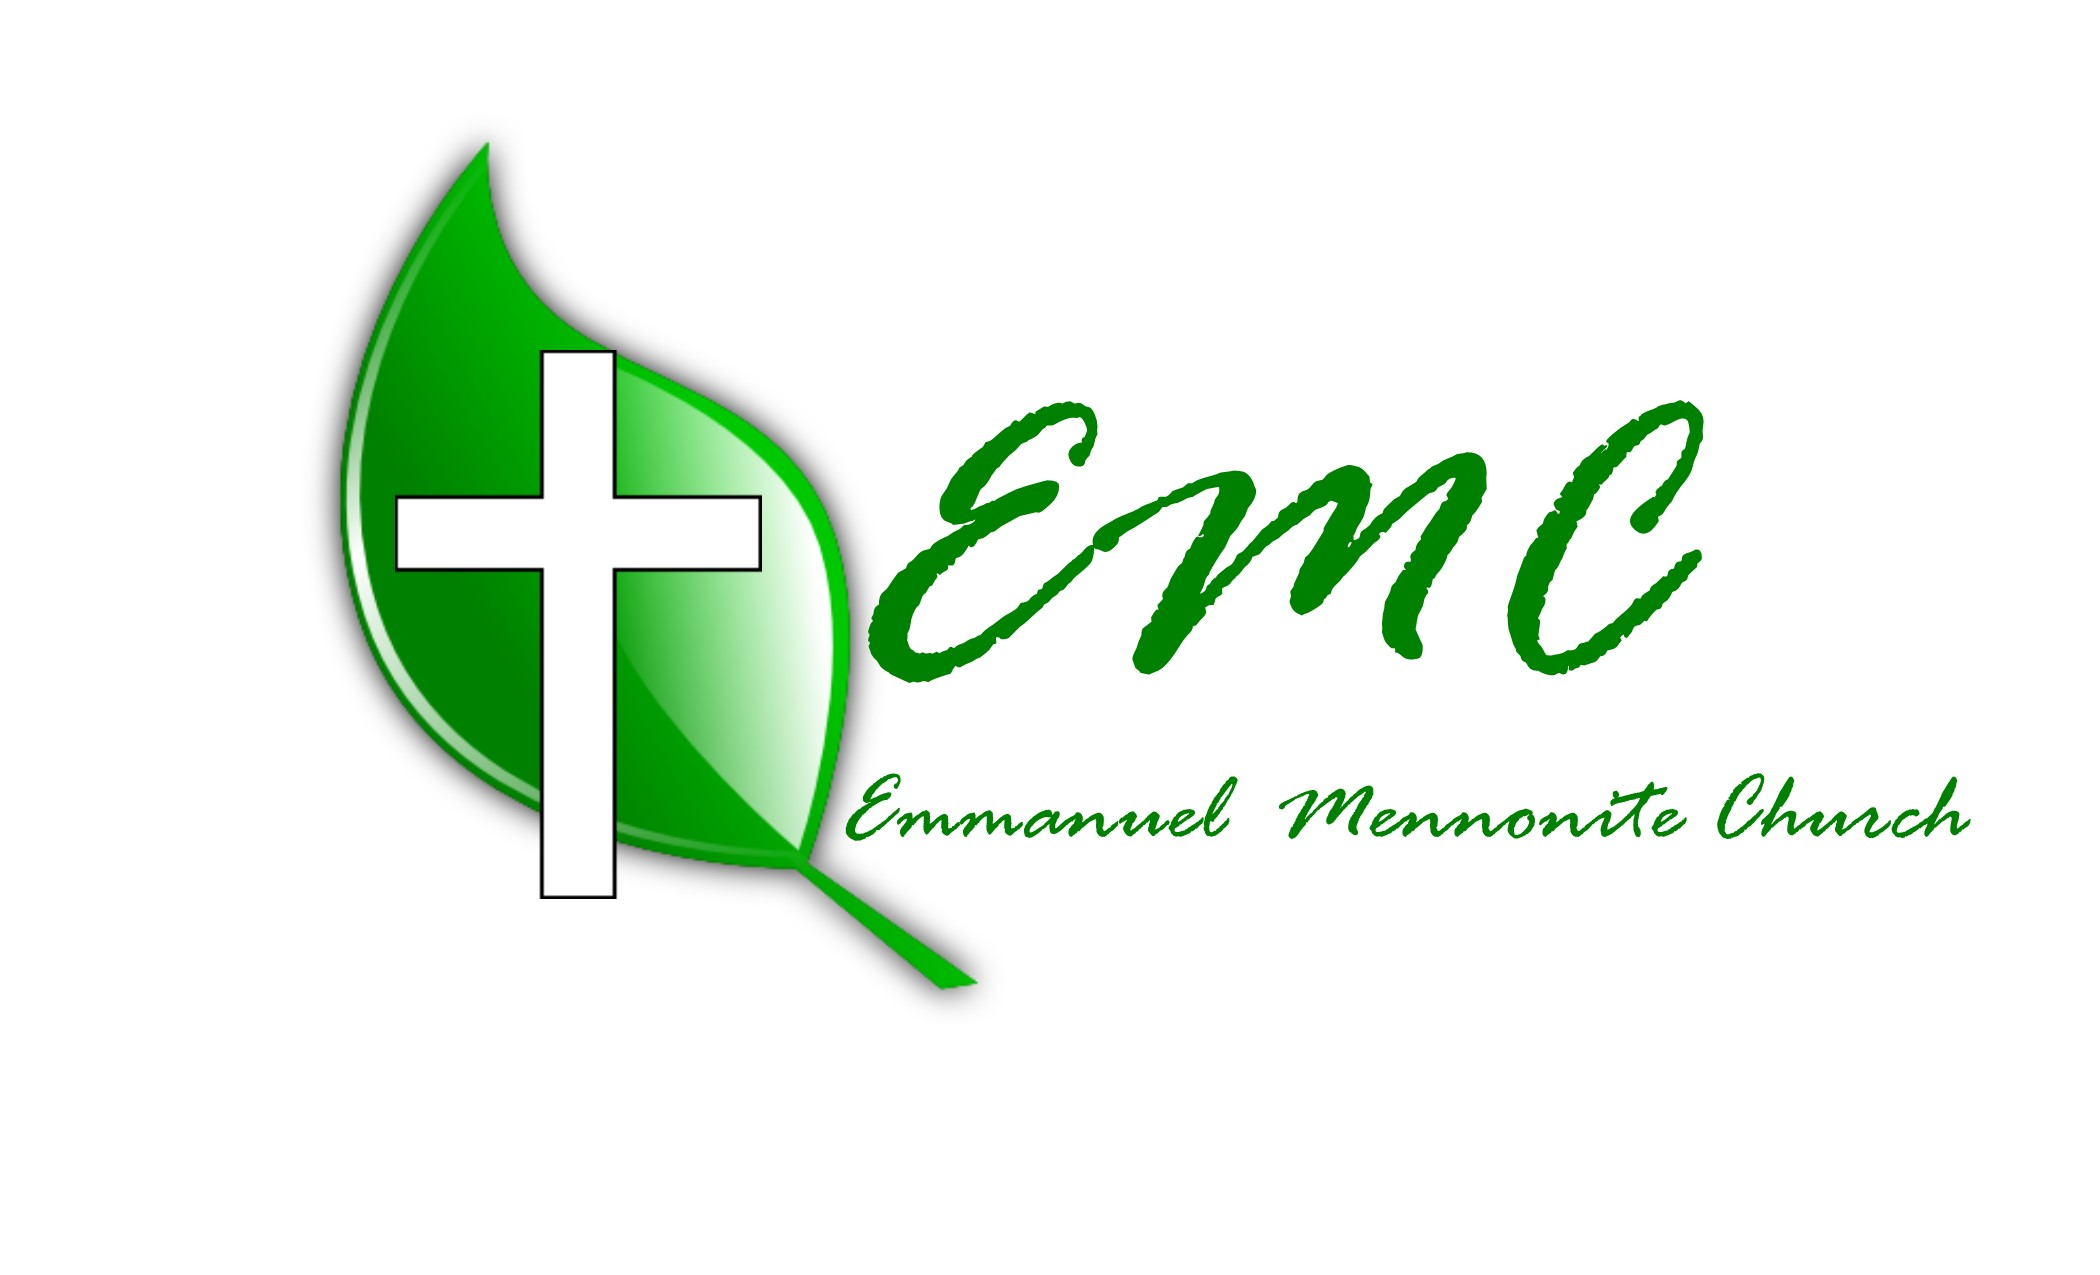 Emmanuel Mennonite Church